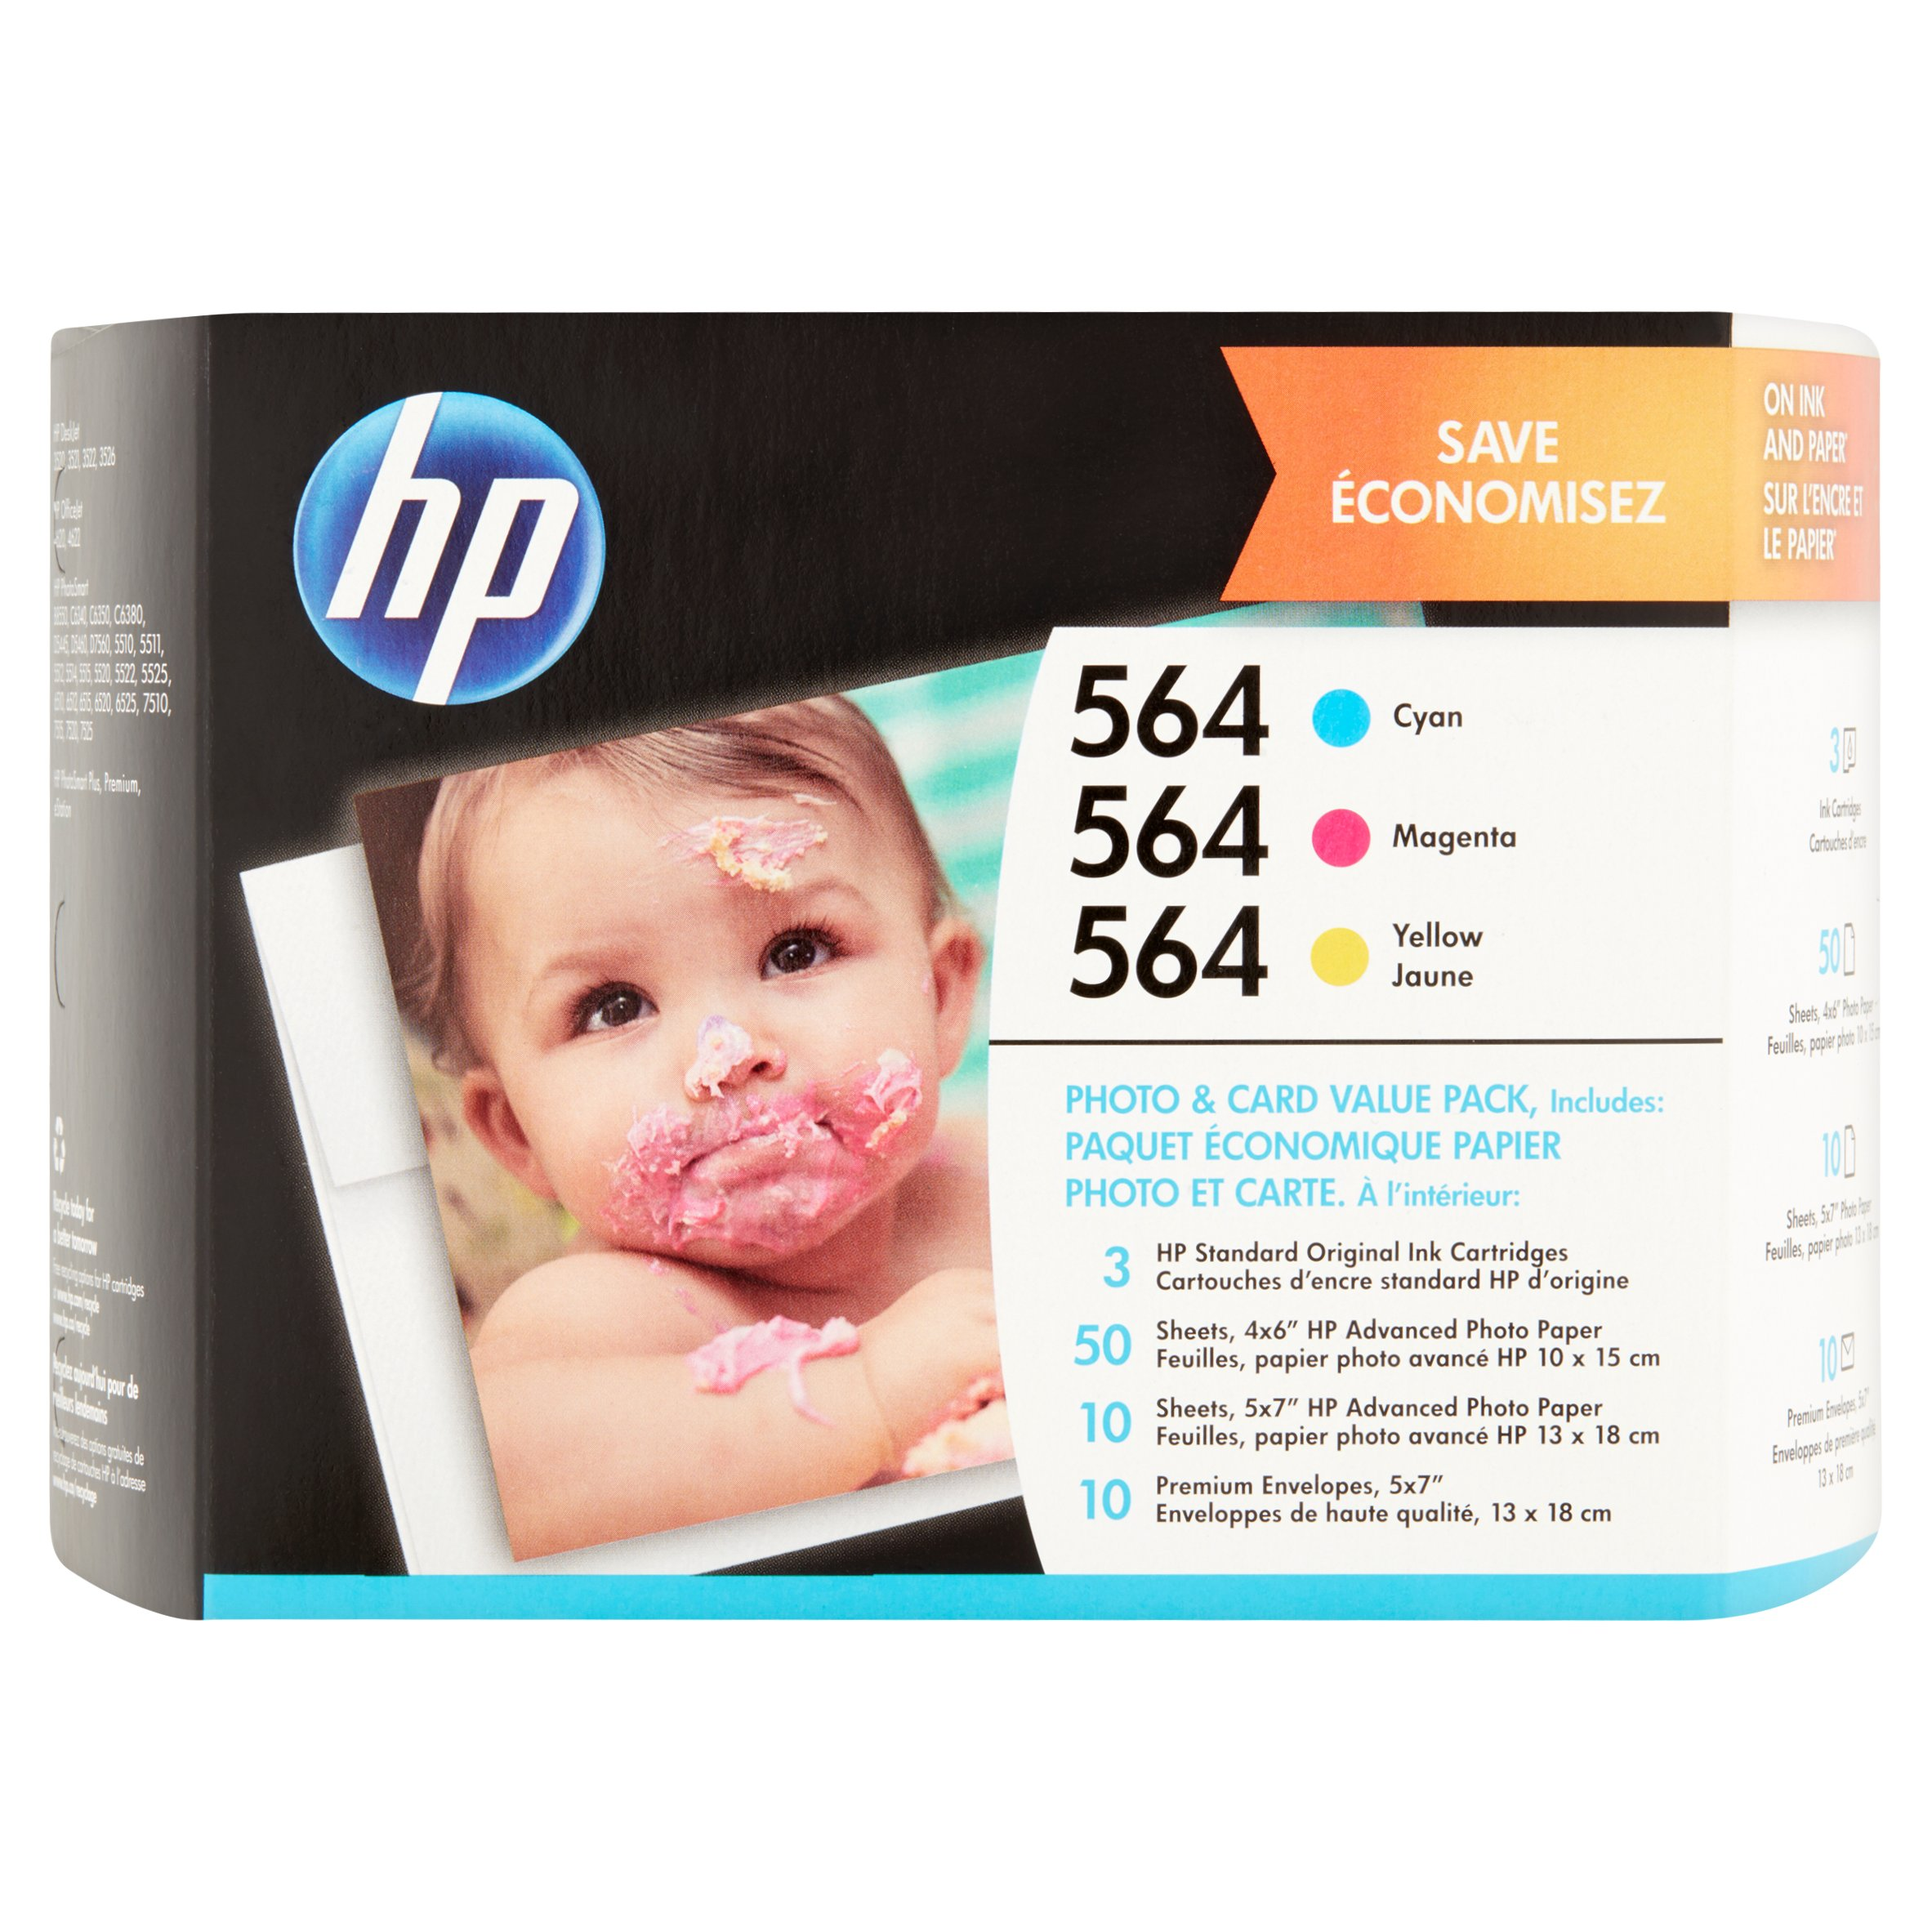 HP 564 Cyan Magenta Yellow Ink Cartridges with Photo Paper and Cards, 3-Pack (J2X80AN) by HP